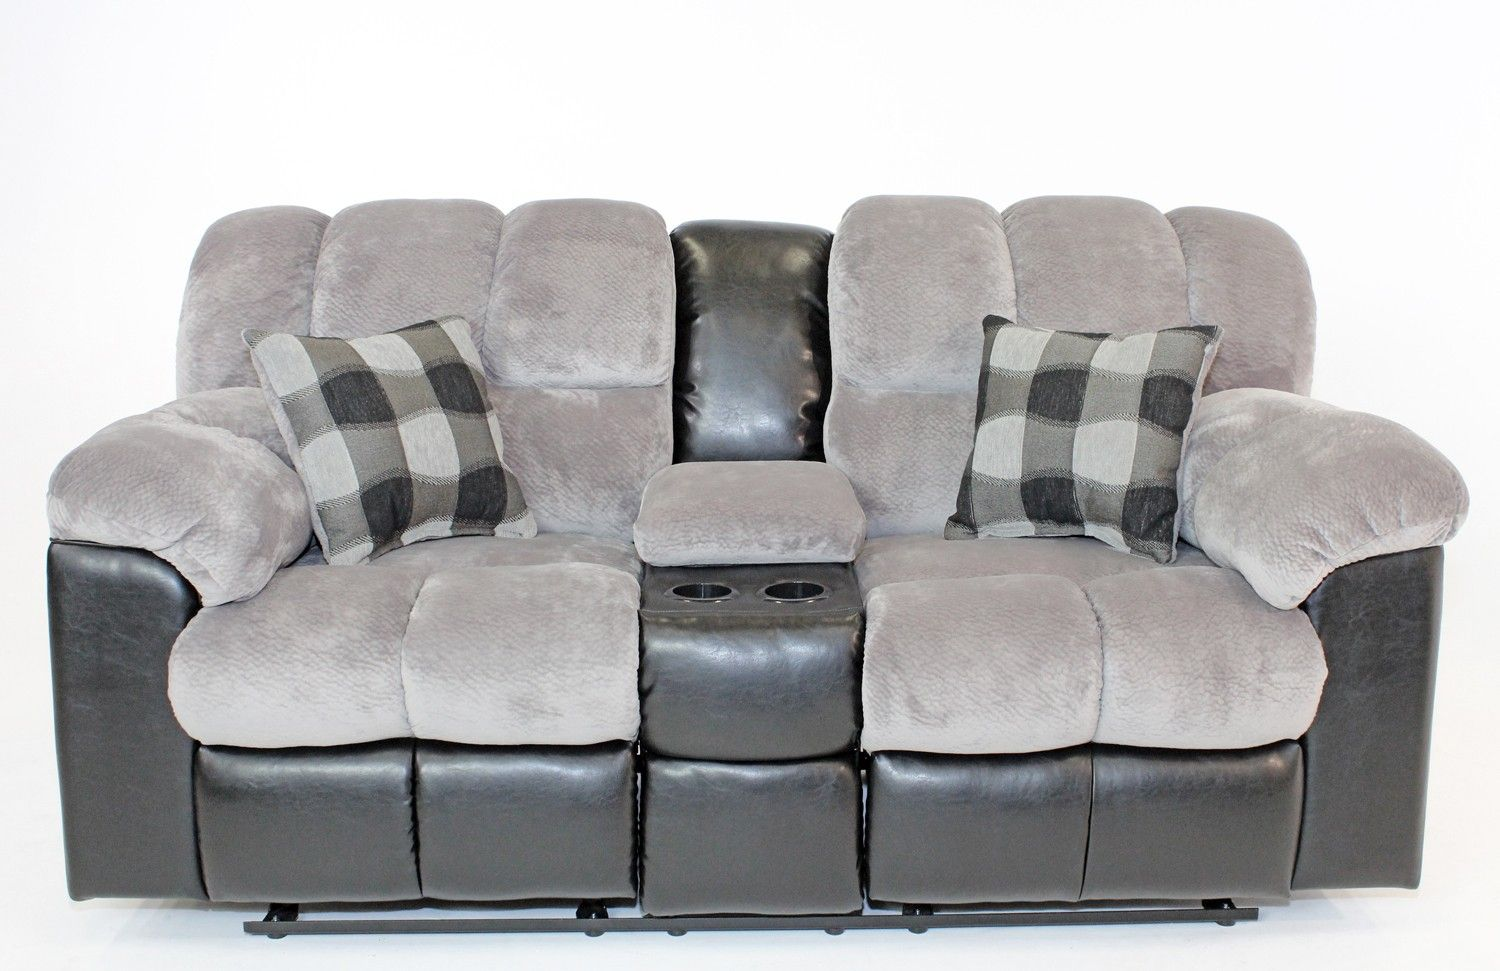 fountain gray reclining console loveseat loveseats living room mor furniture for less